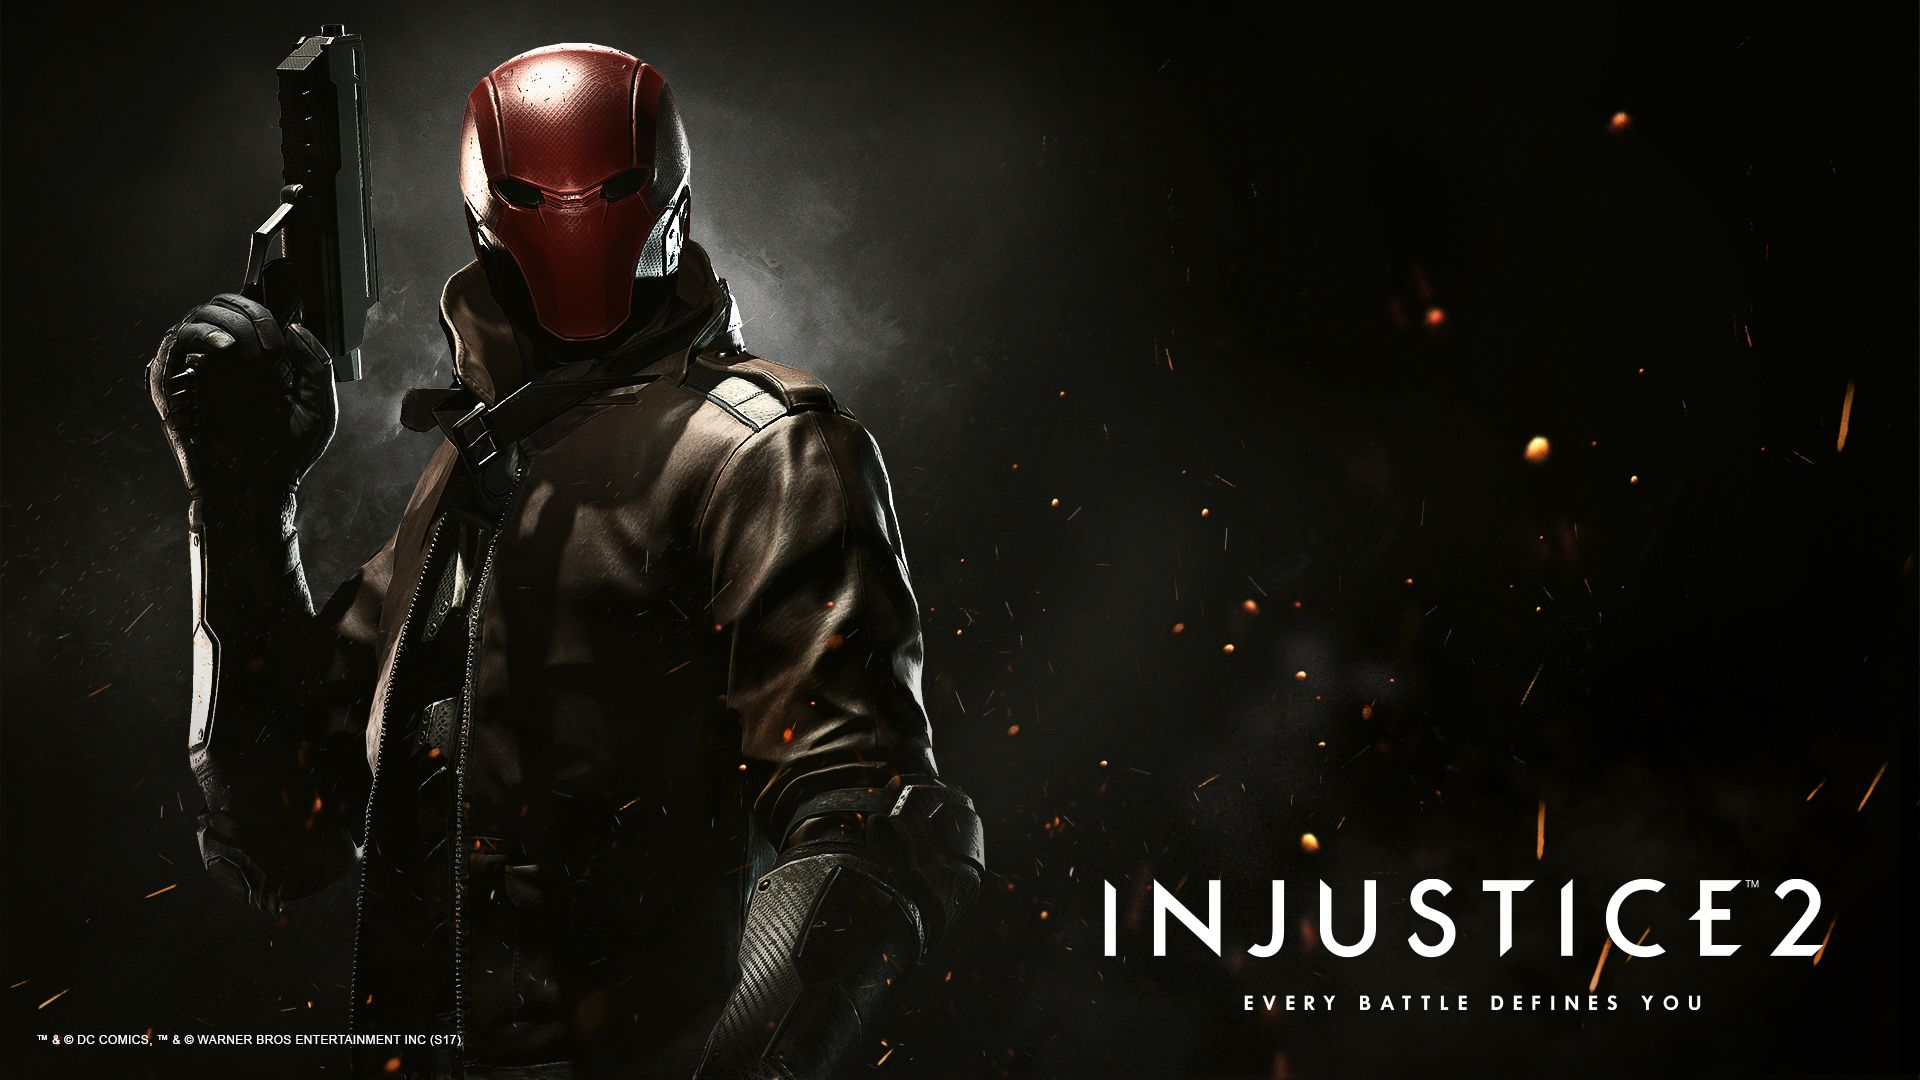 Jason Todd (Injustice)